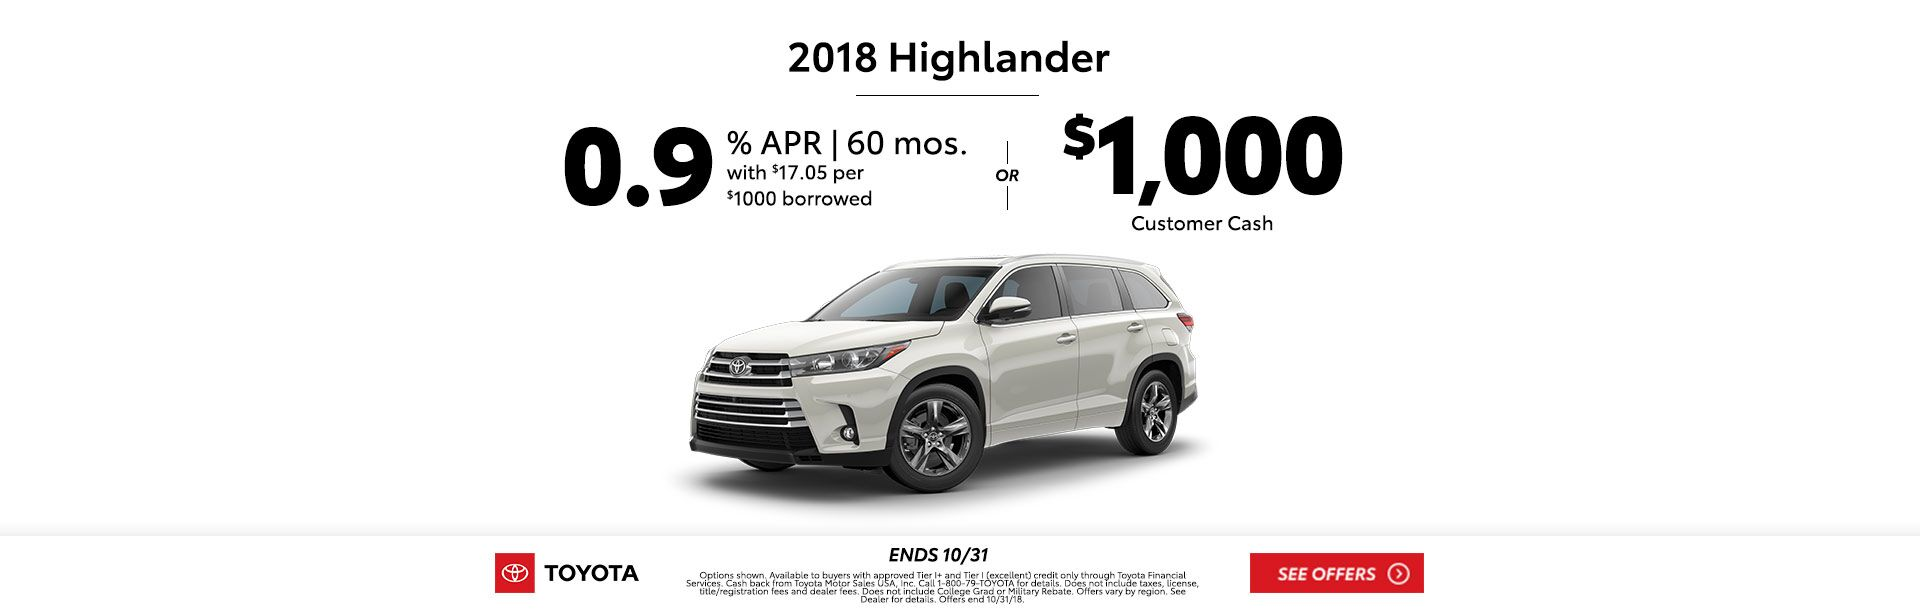 Highlander Customer Cash Oct 2018